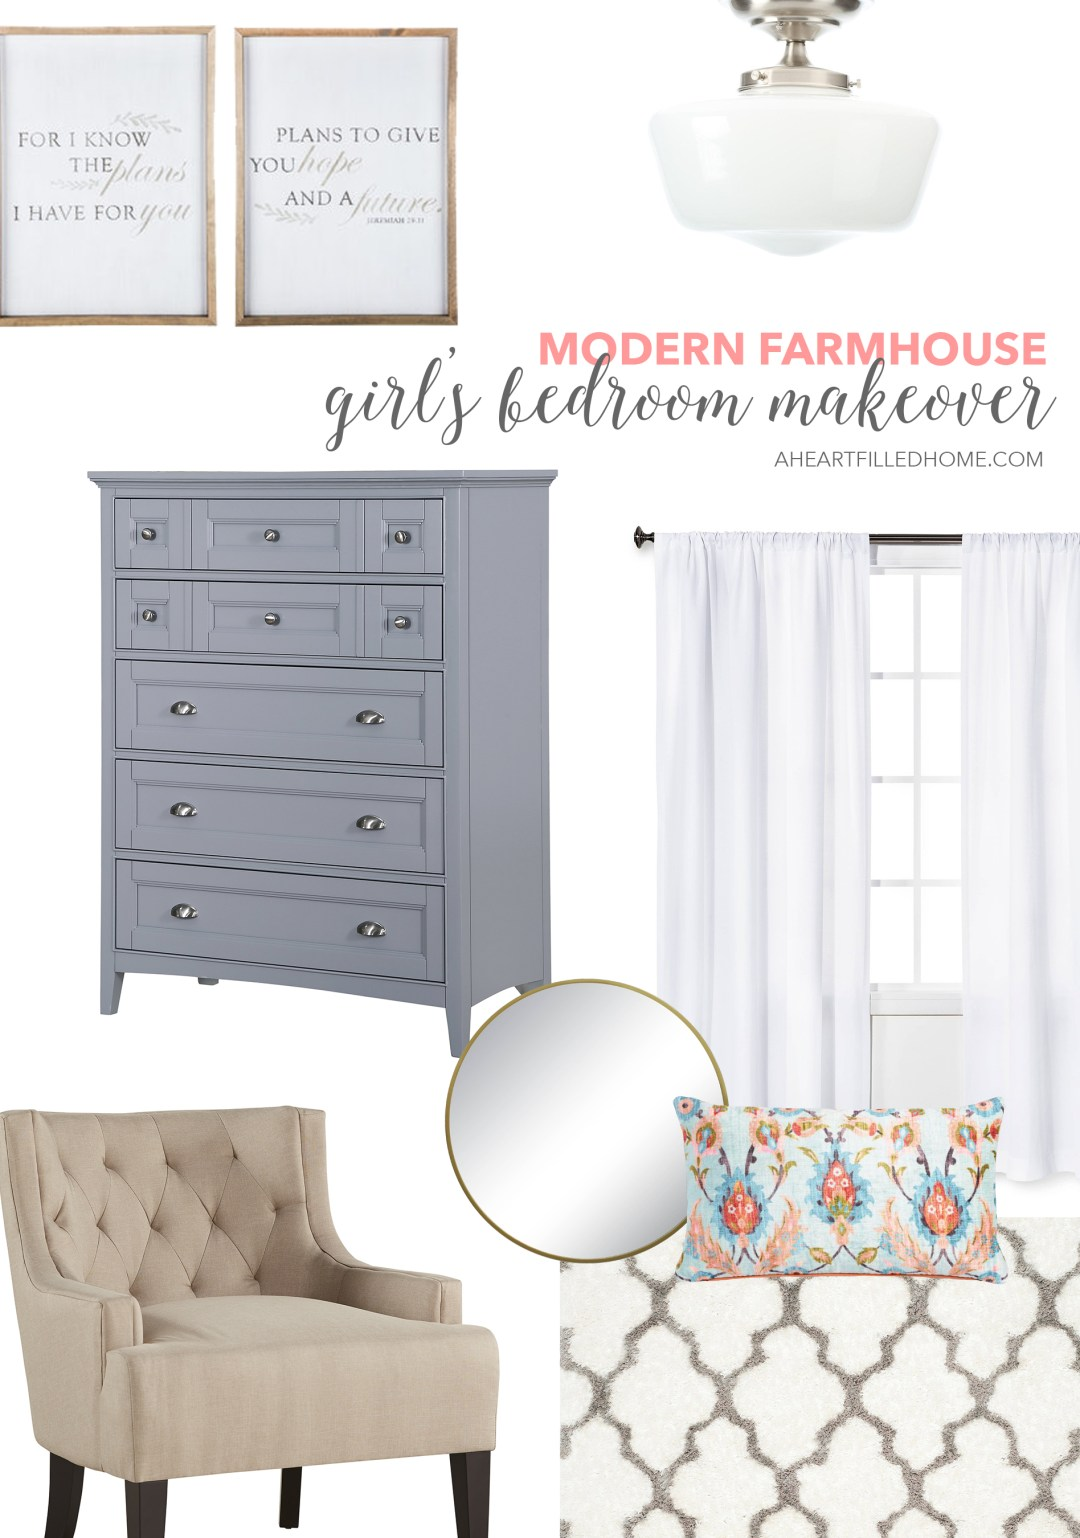 Modern Farmhouse Girl's Bedroom Makeover from aheartfilledhome.com